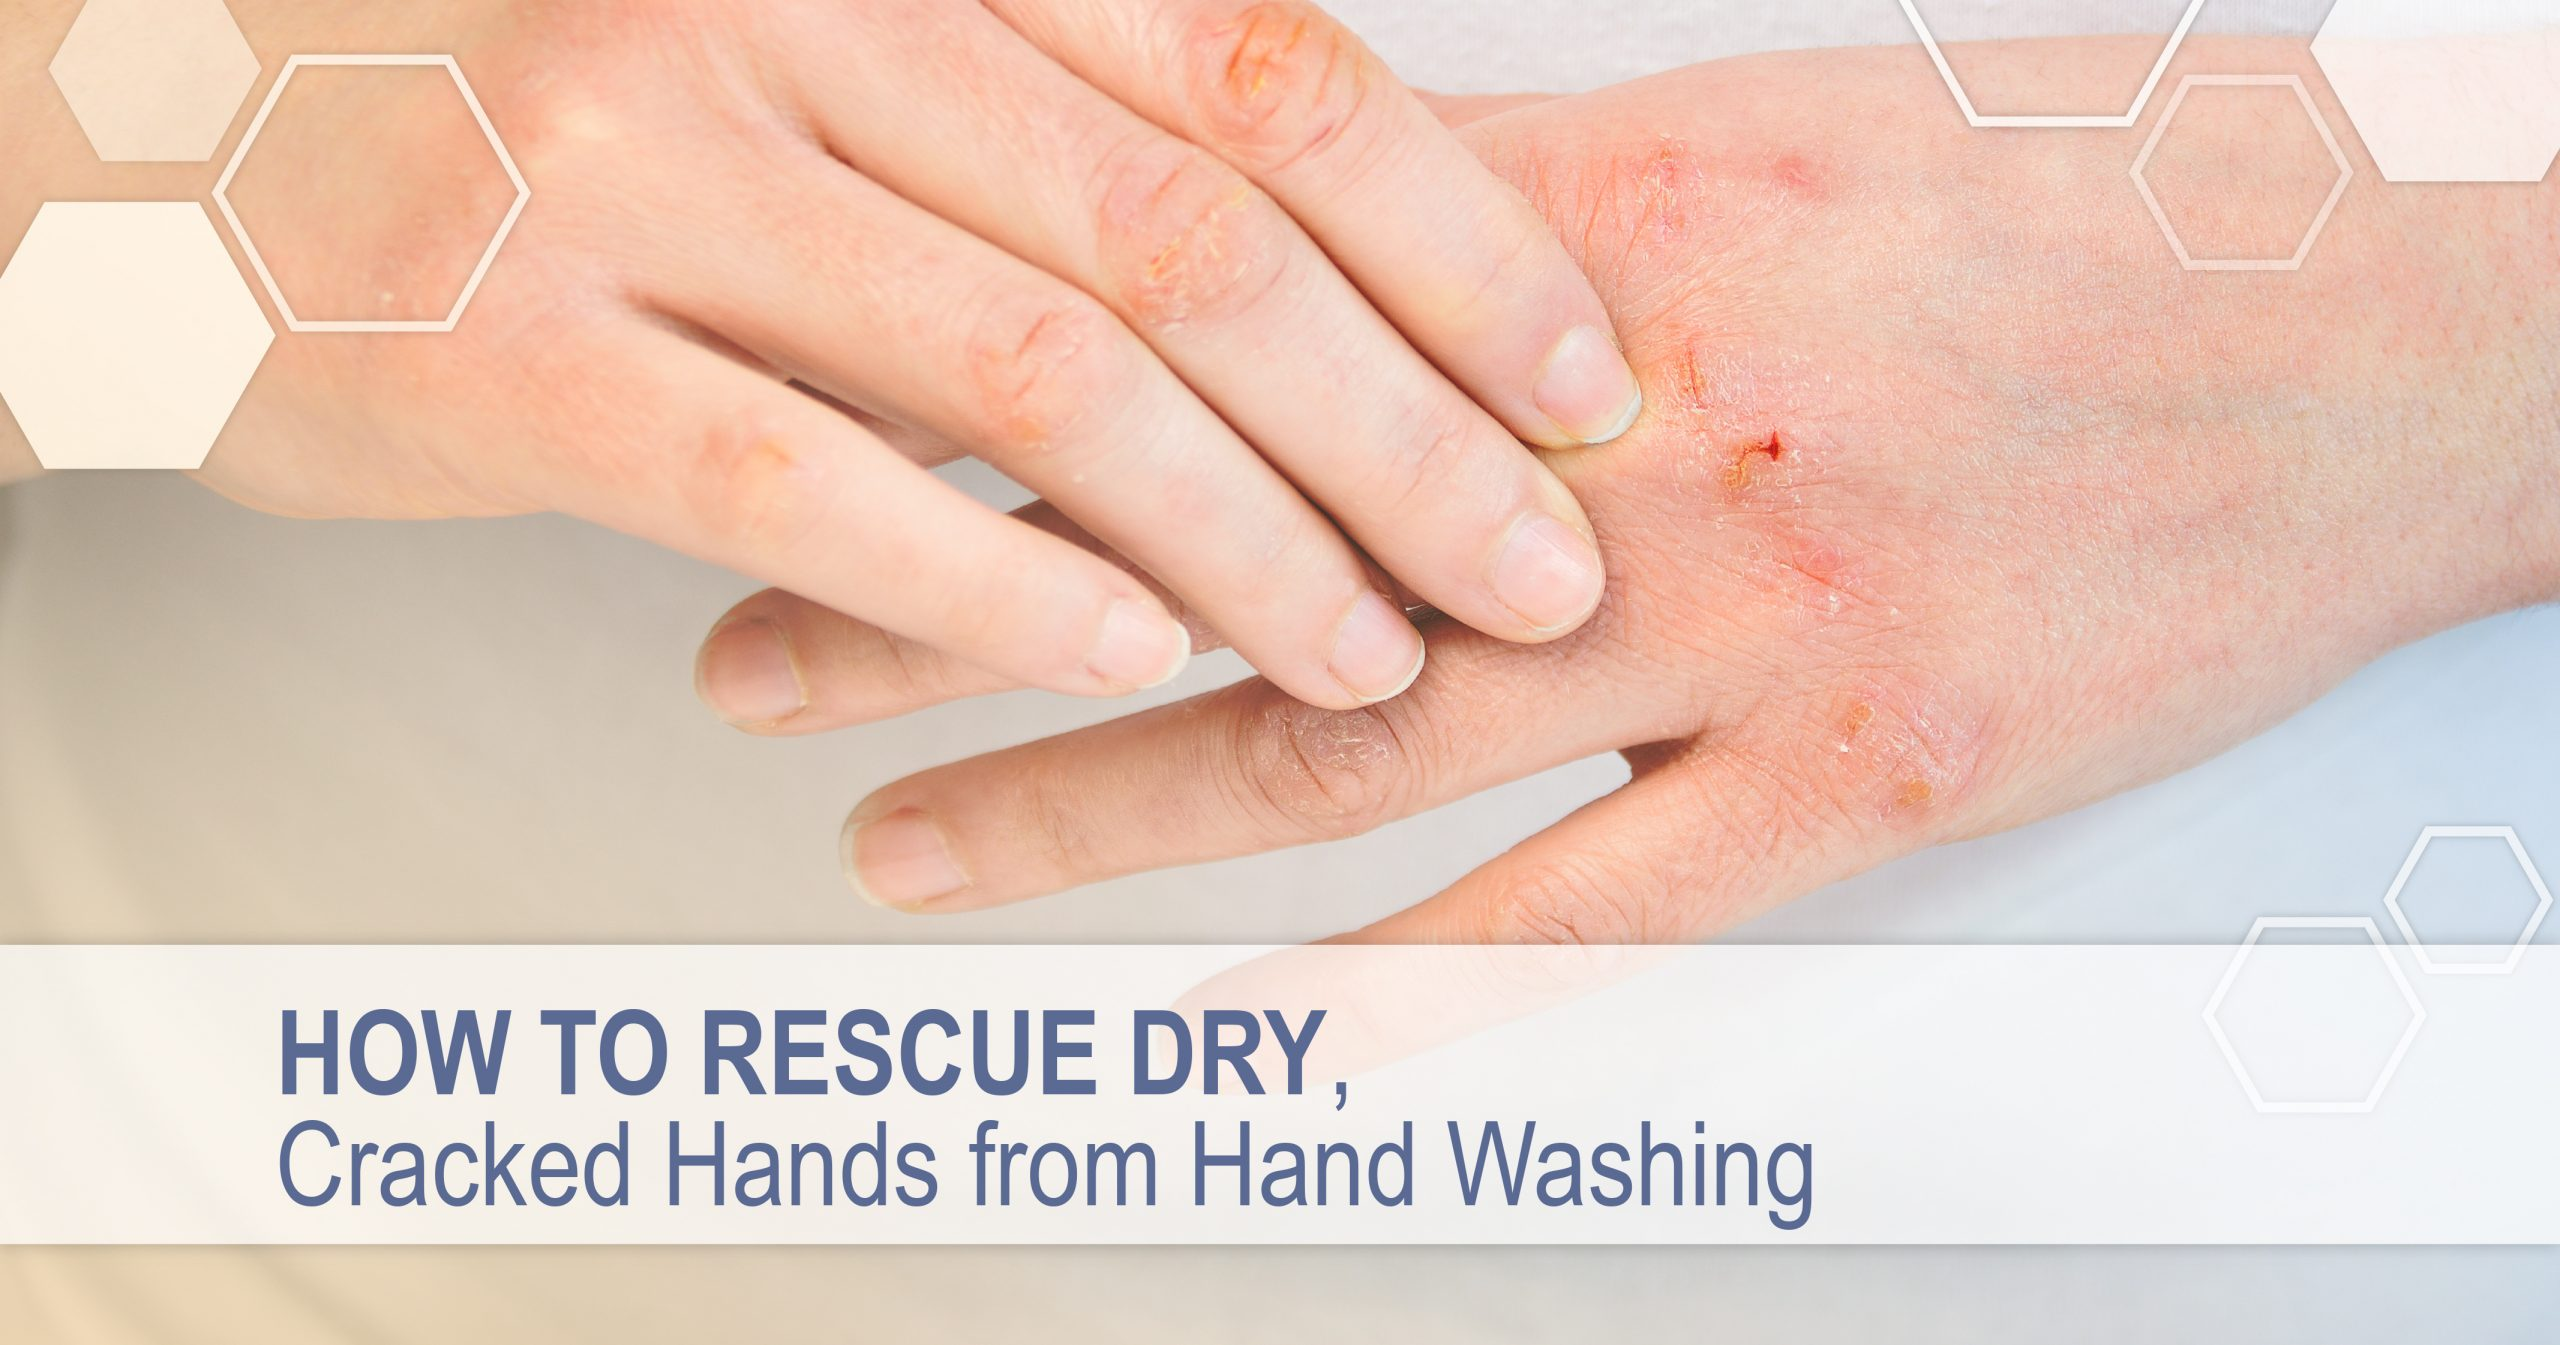 For hands dry cracked treatment home 8 Home